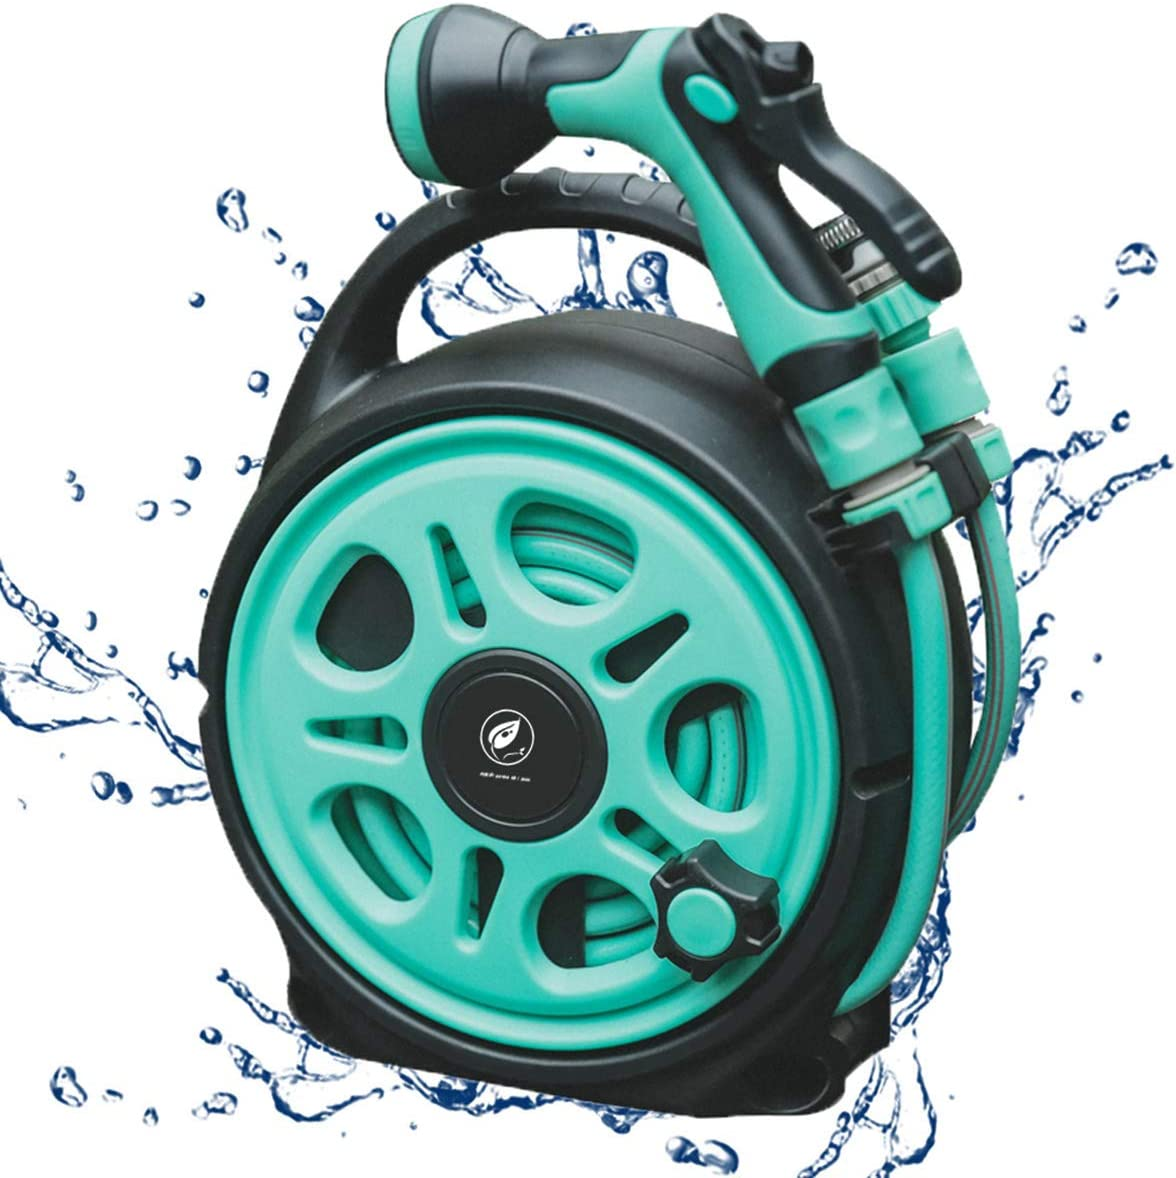 Upgraded Portable Retractable Garden Water Hose Reel Cart, Mini Hideaway Hose Reel Box with 50FT Hose Includes 7 Functions Spray Nozzle, Convenient Storage,Watering, Car Wash, Pet, Gardening